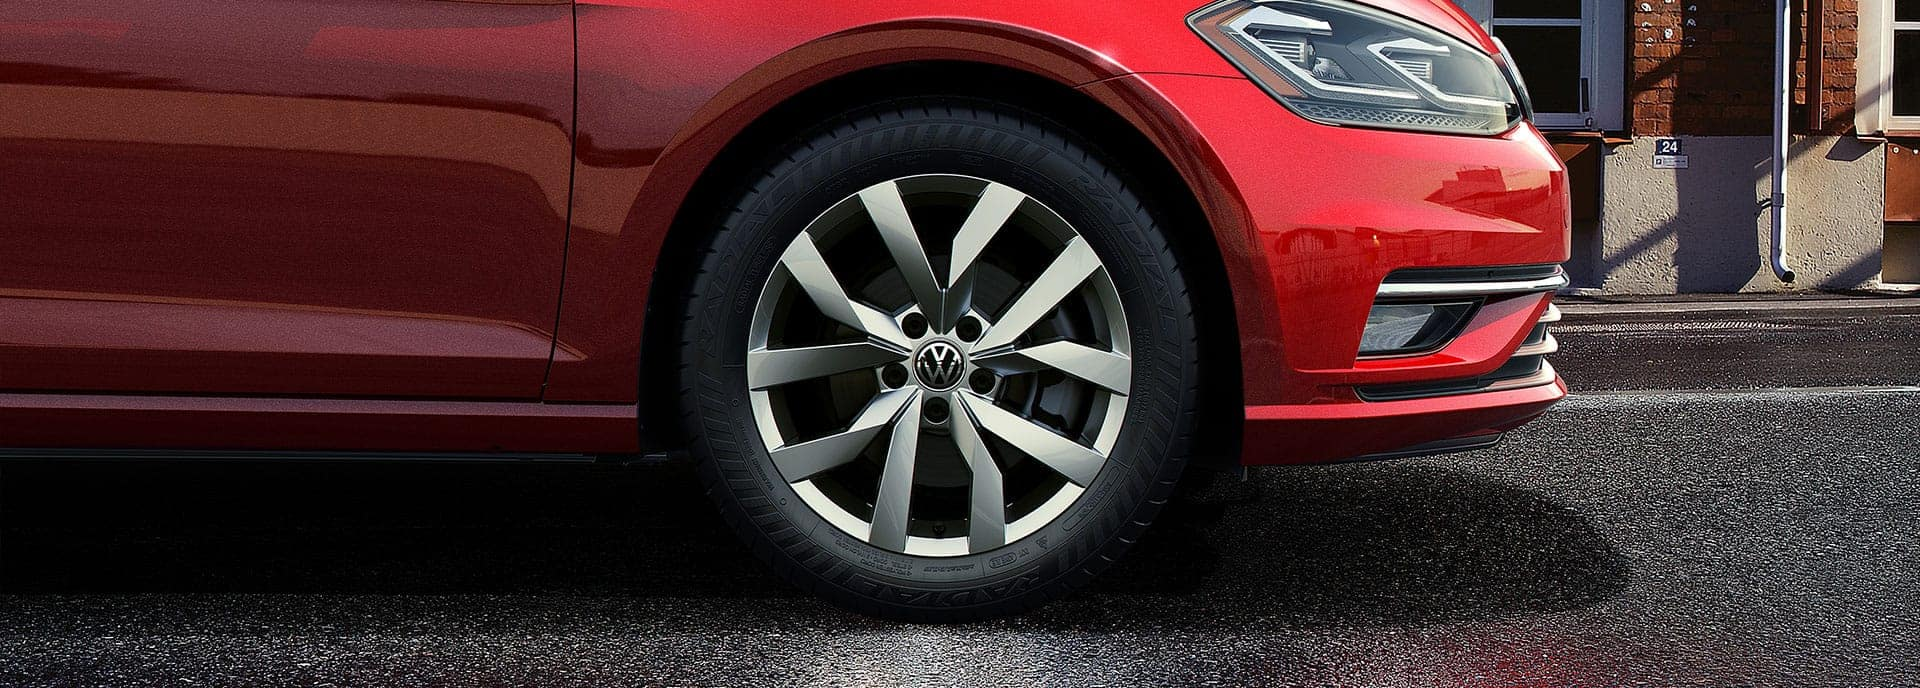 A close-up of the wheel on a red 2019 VW Golf